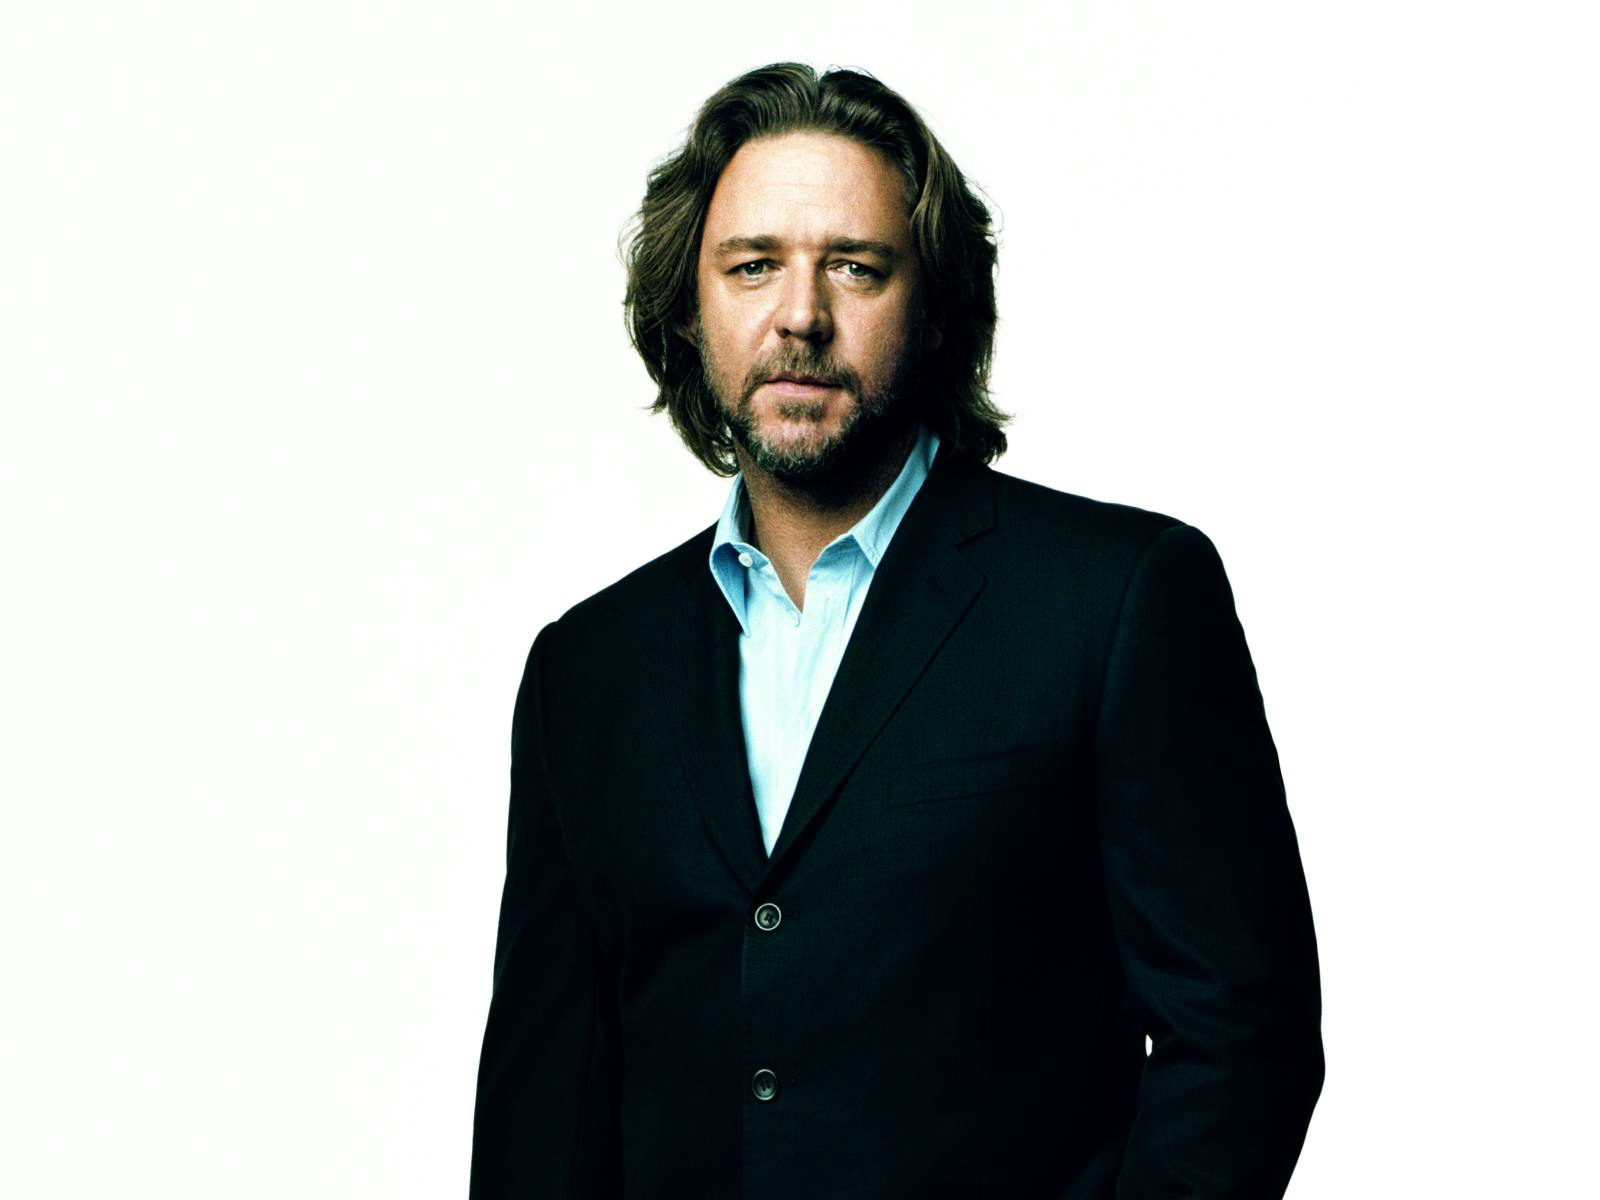 1600x1200 - Russell Crowe Wallpapers 11